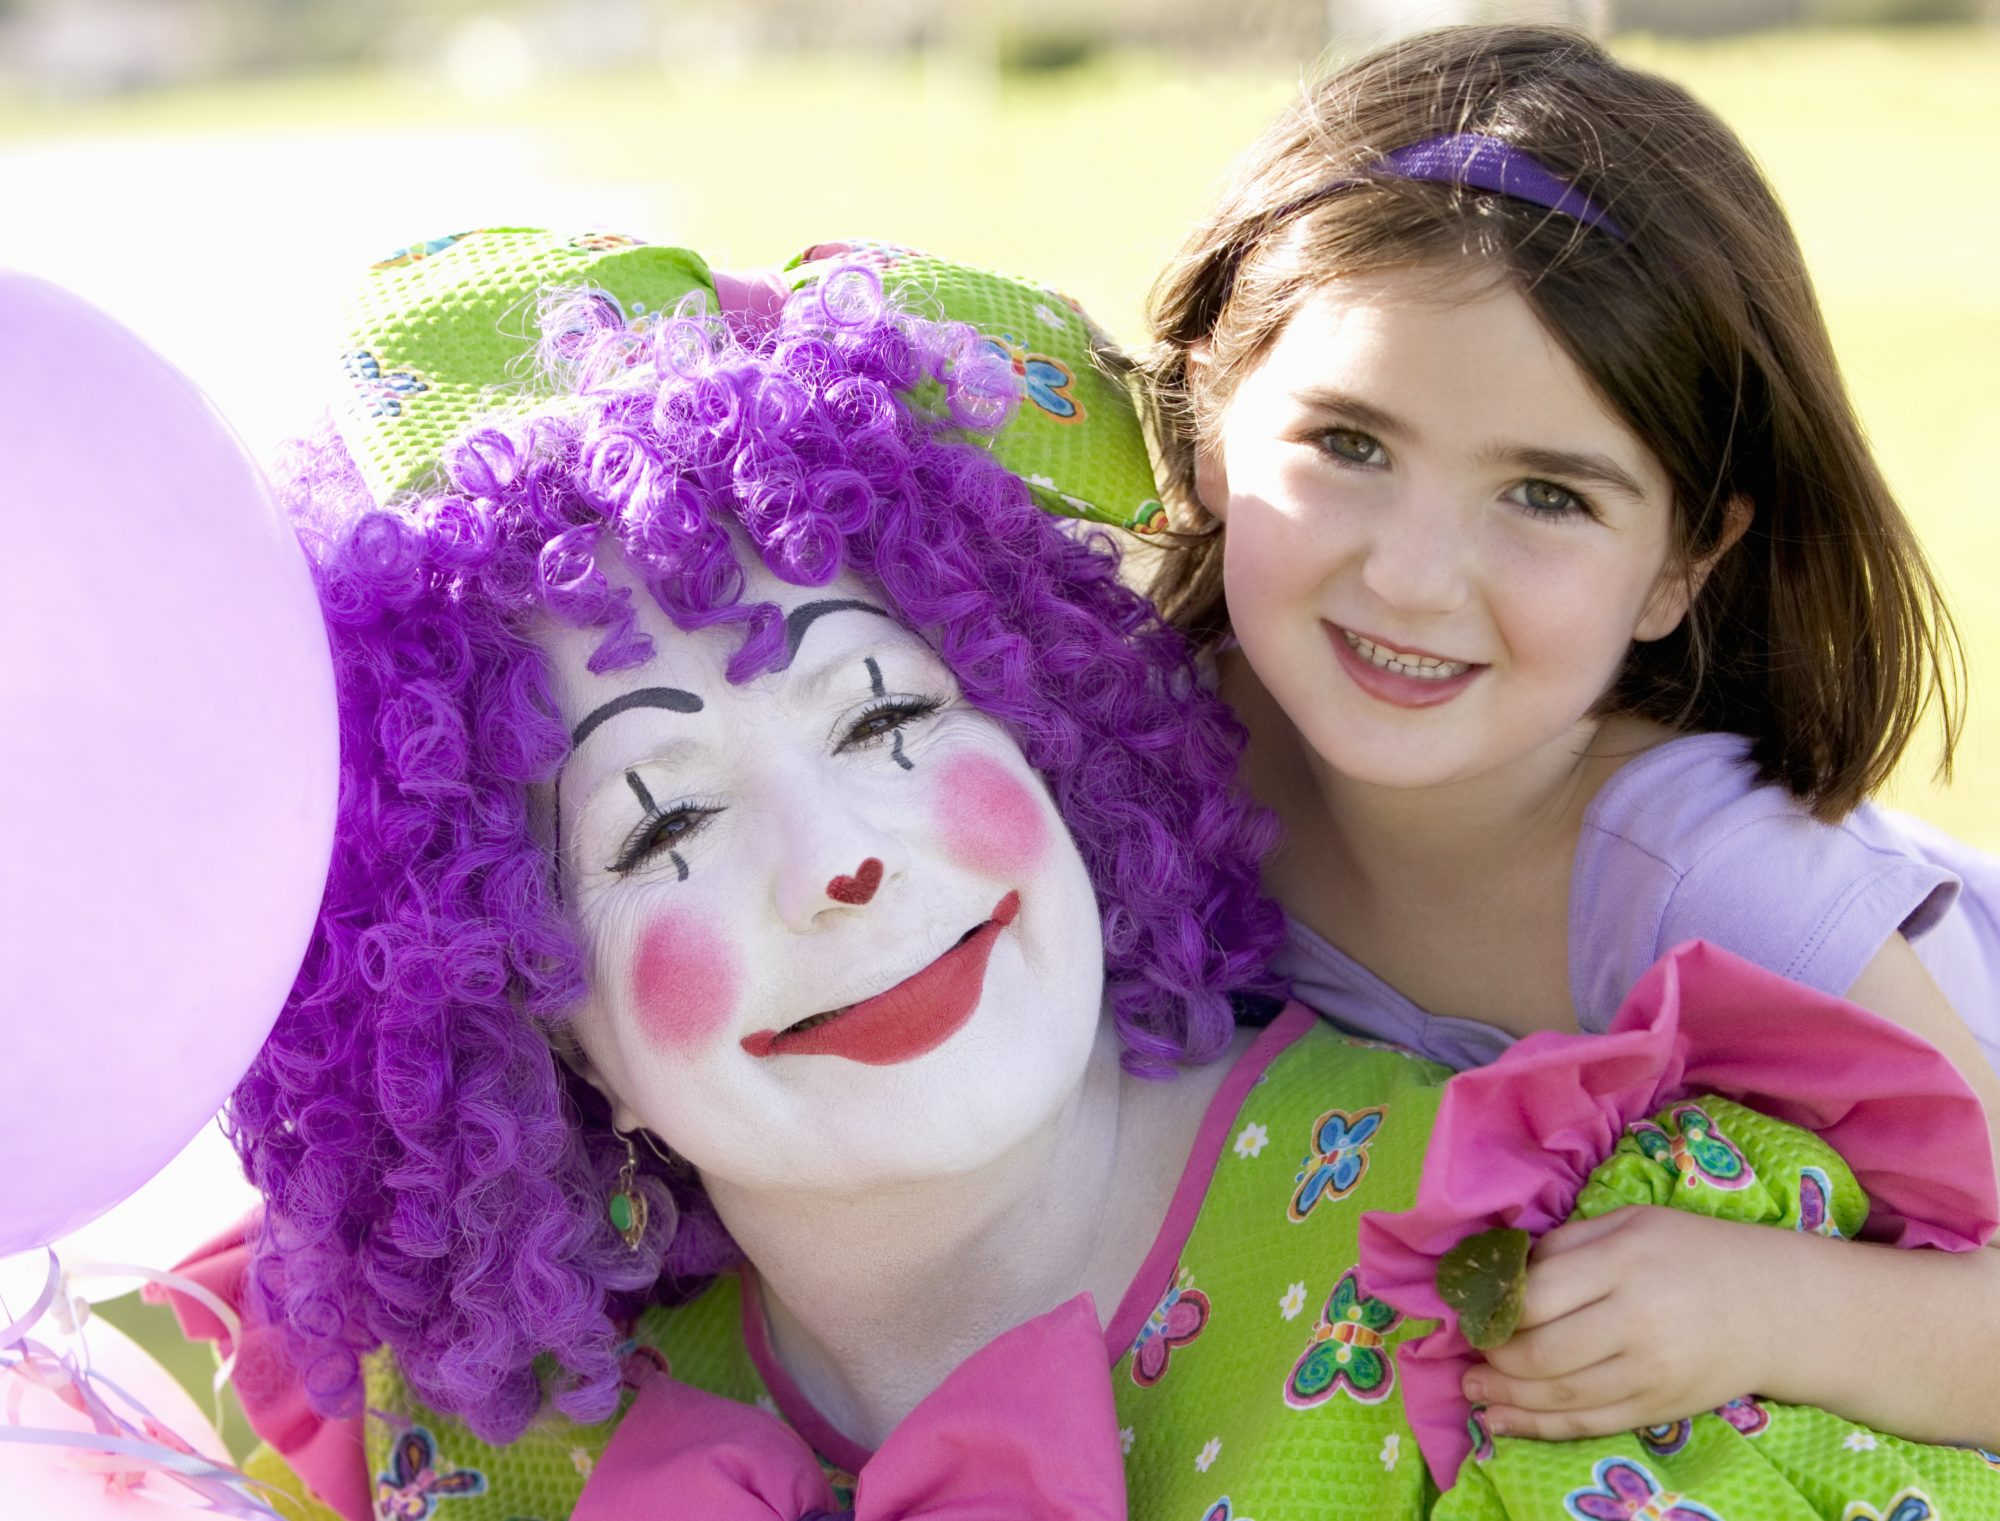 Female Clown with Child